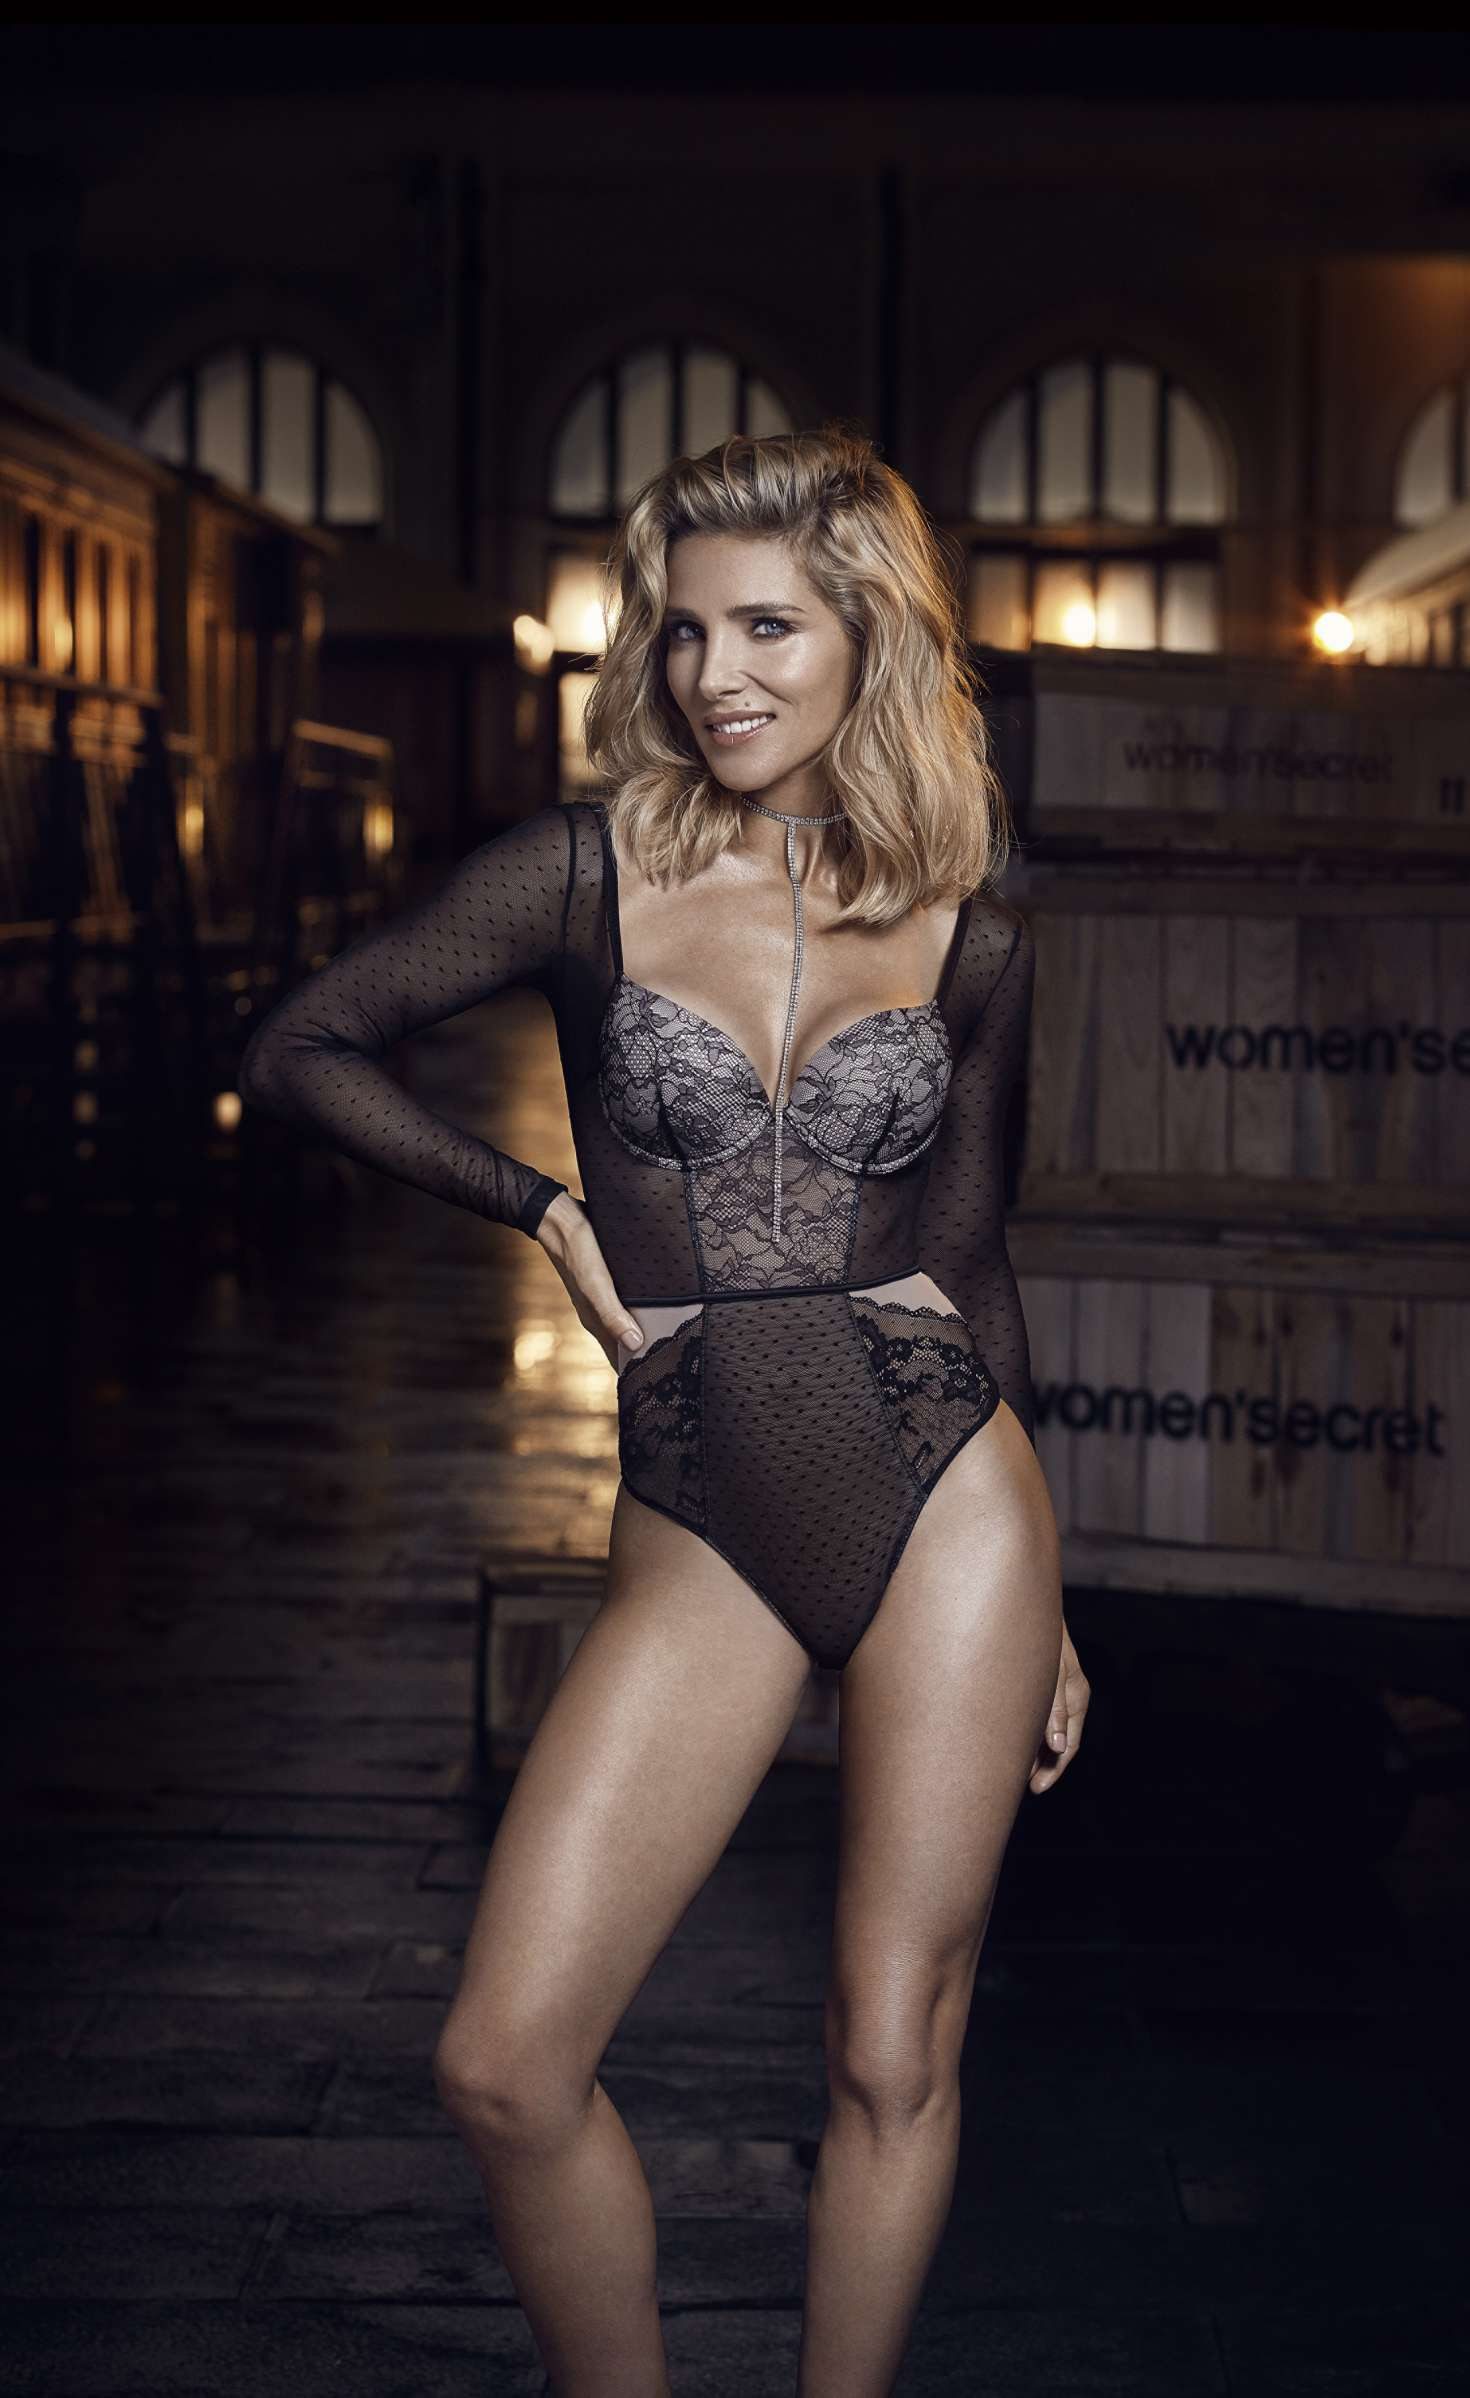 Elsa Pataky – Women'Secret Collection (Autumn/Winter 2017/2018)